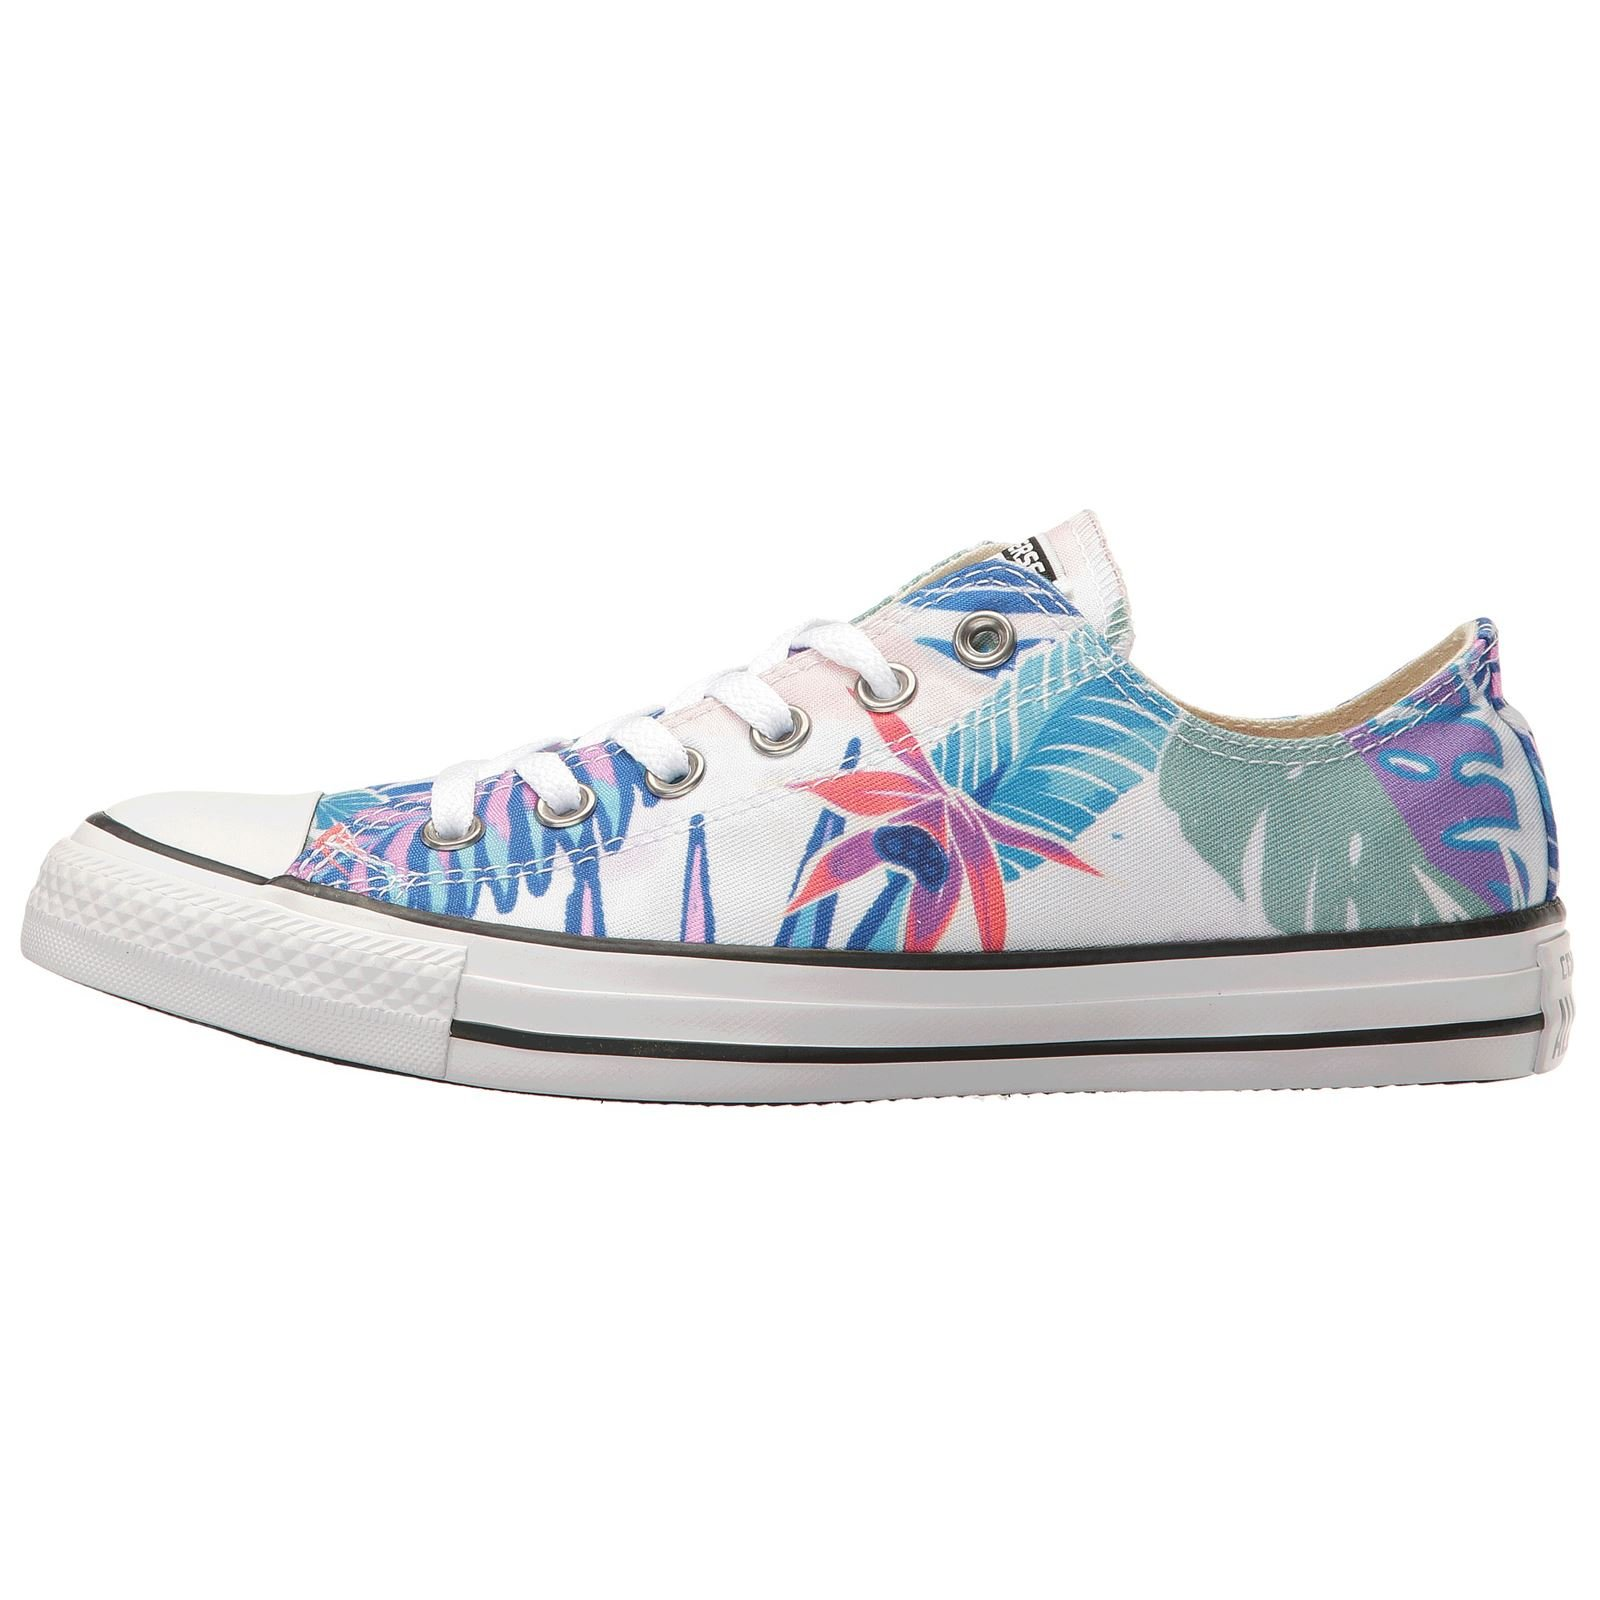 c69d5c4cde2113 Galleon - Converse Mens Chuck Taylor All Stars Tropical Print OX Low Top  Multi Canvas Trainers 8 US